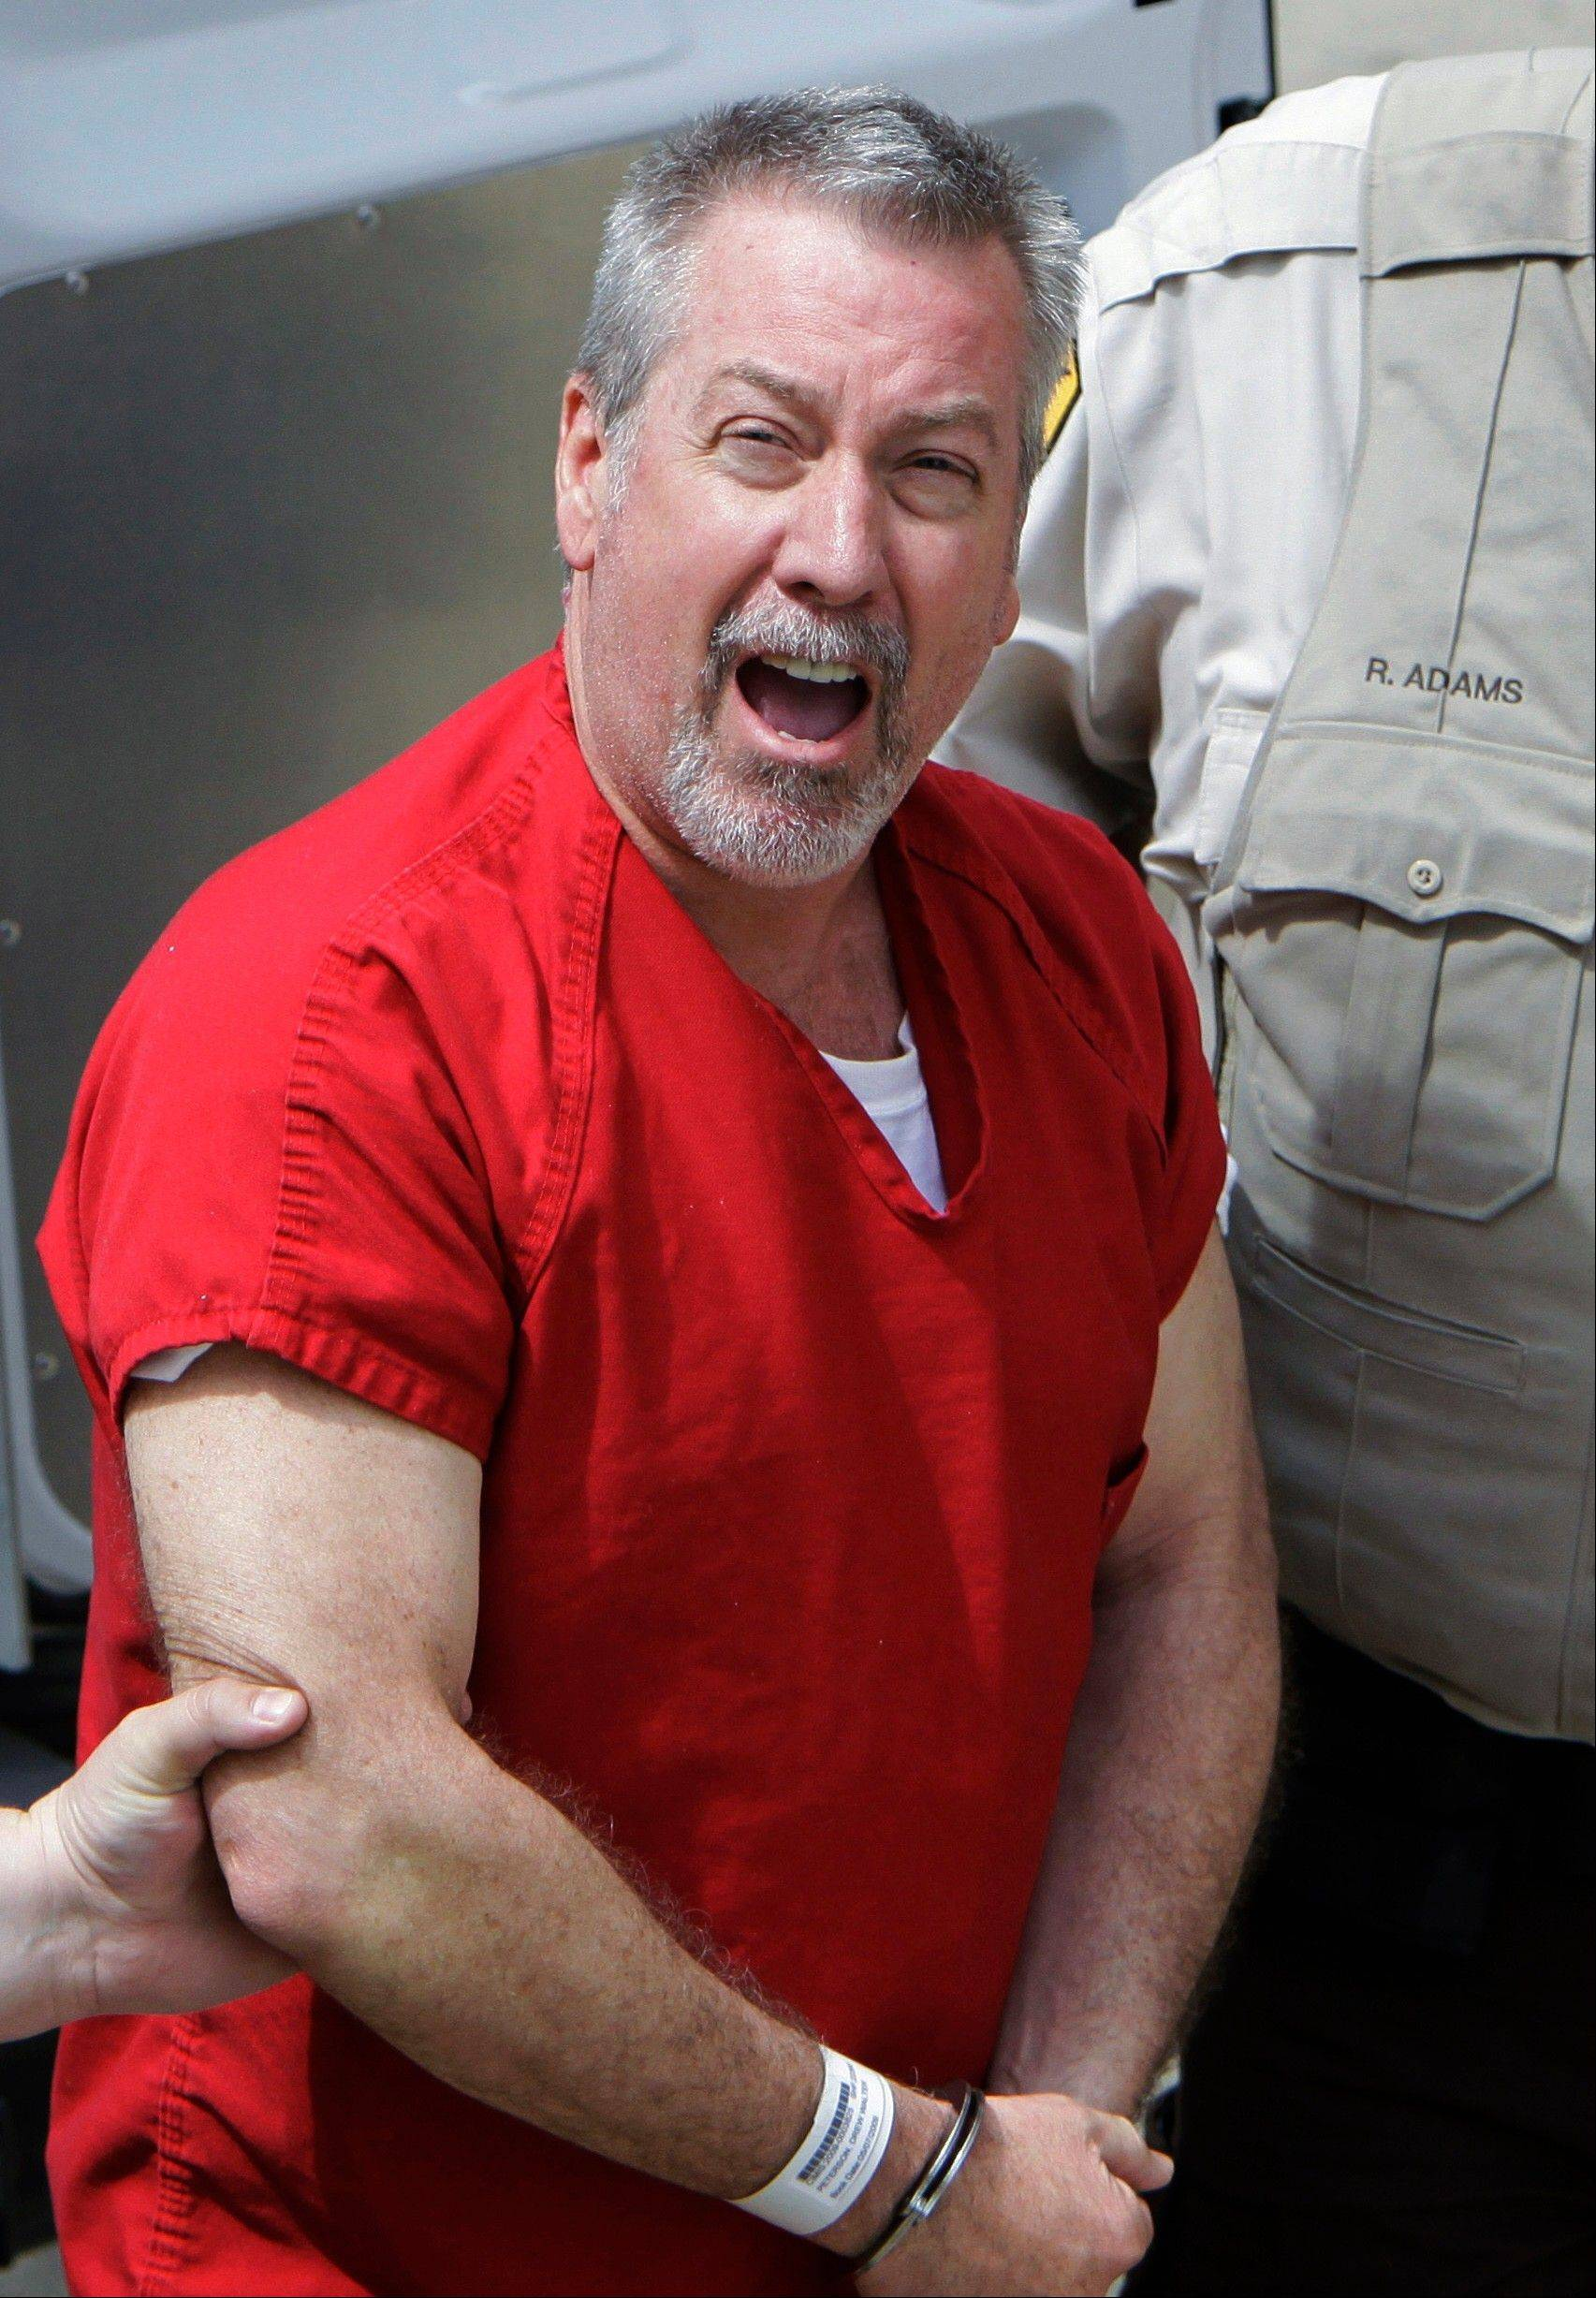 FILE - In this May 8, 2009 file photo, former Bolingbrook, Ill., police sergeant Drew Peterson yells to reporters as he arrives at the Will County Courthouse in Joliet, Ill. A state appellate court on Tuesday, July 26, 2011 refused to overturn a Will County judge's decision barring prosecutors from using some hearsay, or second hand, evidence against former Bolingbrook police Sgt. Drew Peterson. Peterson is charged with first-degree murder in the 2004 slaying of third wife Kathleen Savio. He also is a suspect in the 2007 disappearance of his fourth wife, Stacy Peterson. (AP Photo/M. Spencer Green, File)